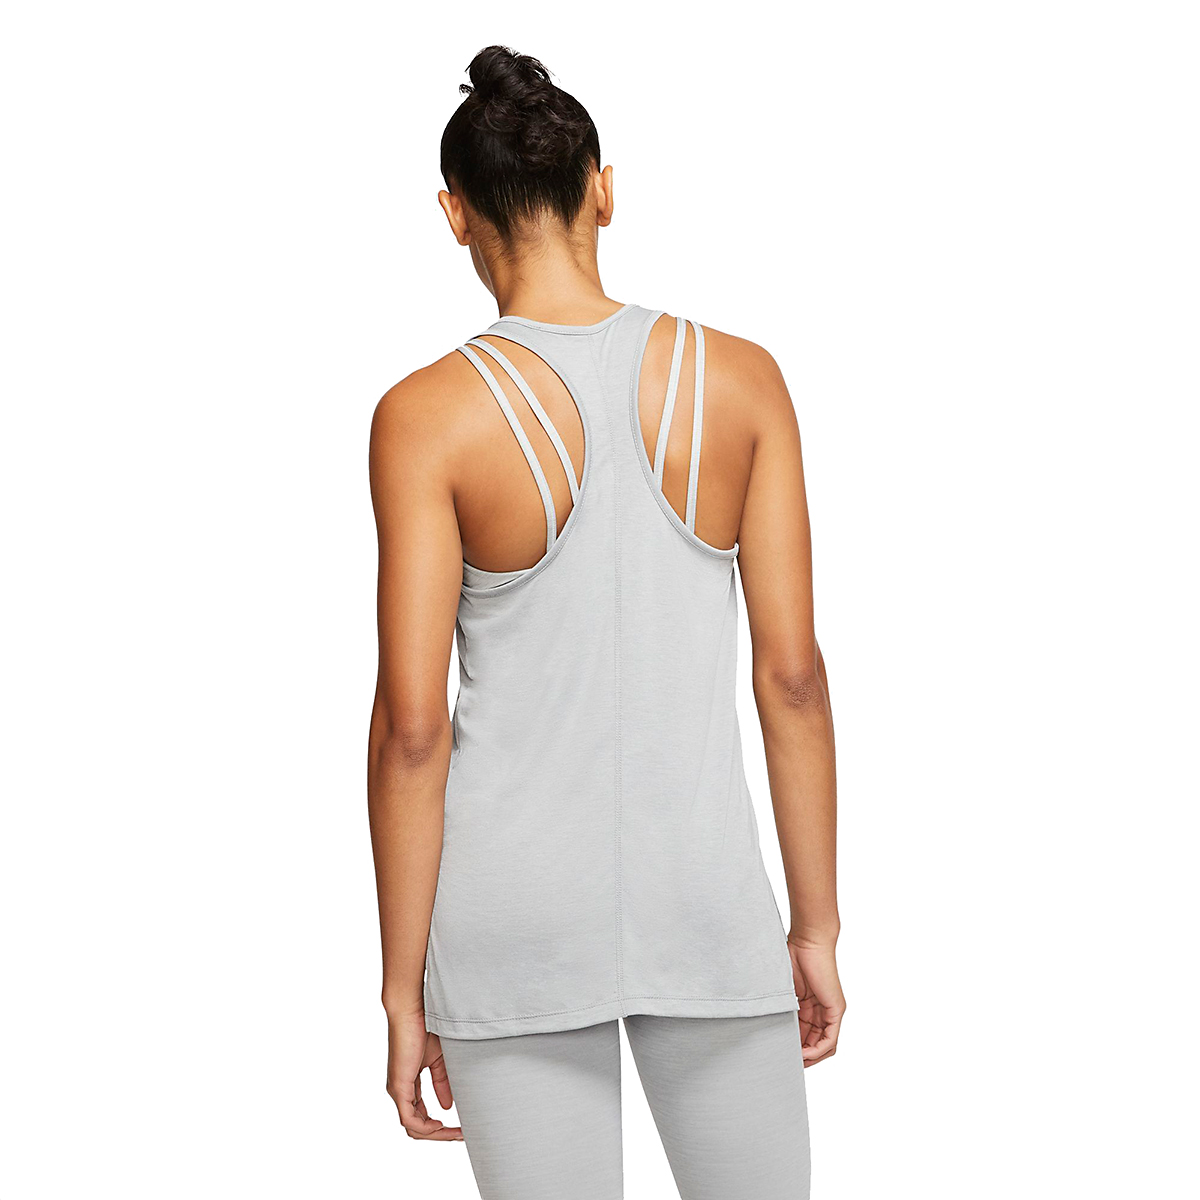 Women's Nike Yoga Layer Tank - Color: Particle Grey/Heather/Platinim Tint - Size: XS, Particle Grey/Heather/Platinim Tint, large, image 2